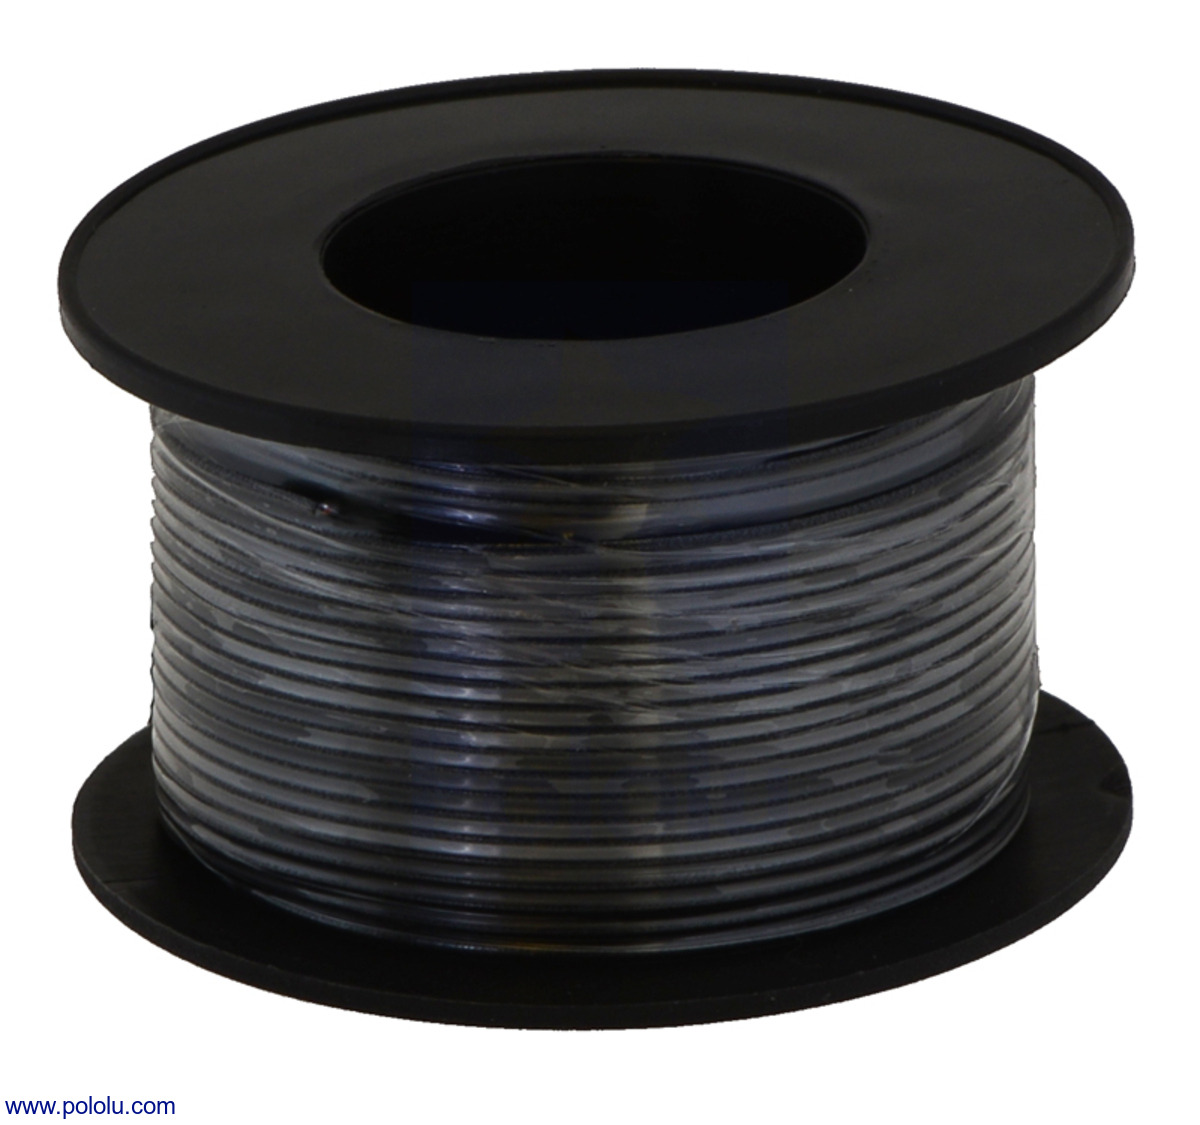 Pololu - Stranded Wire: Black, 30 AWG, 100 Feet